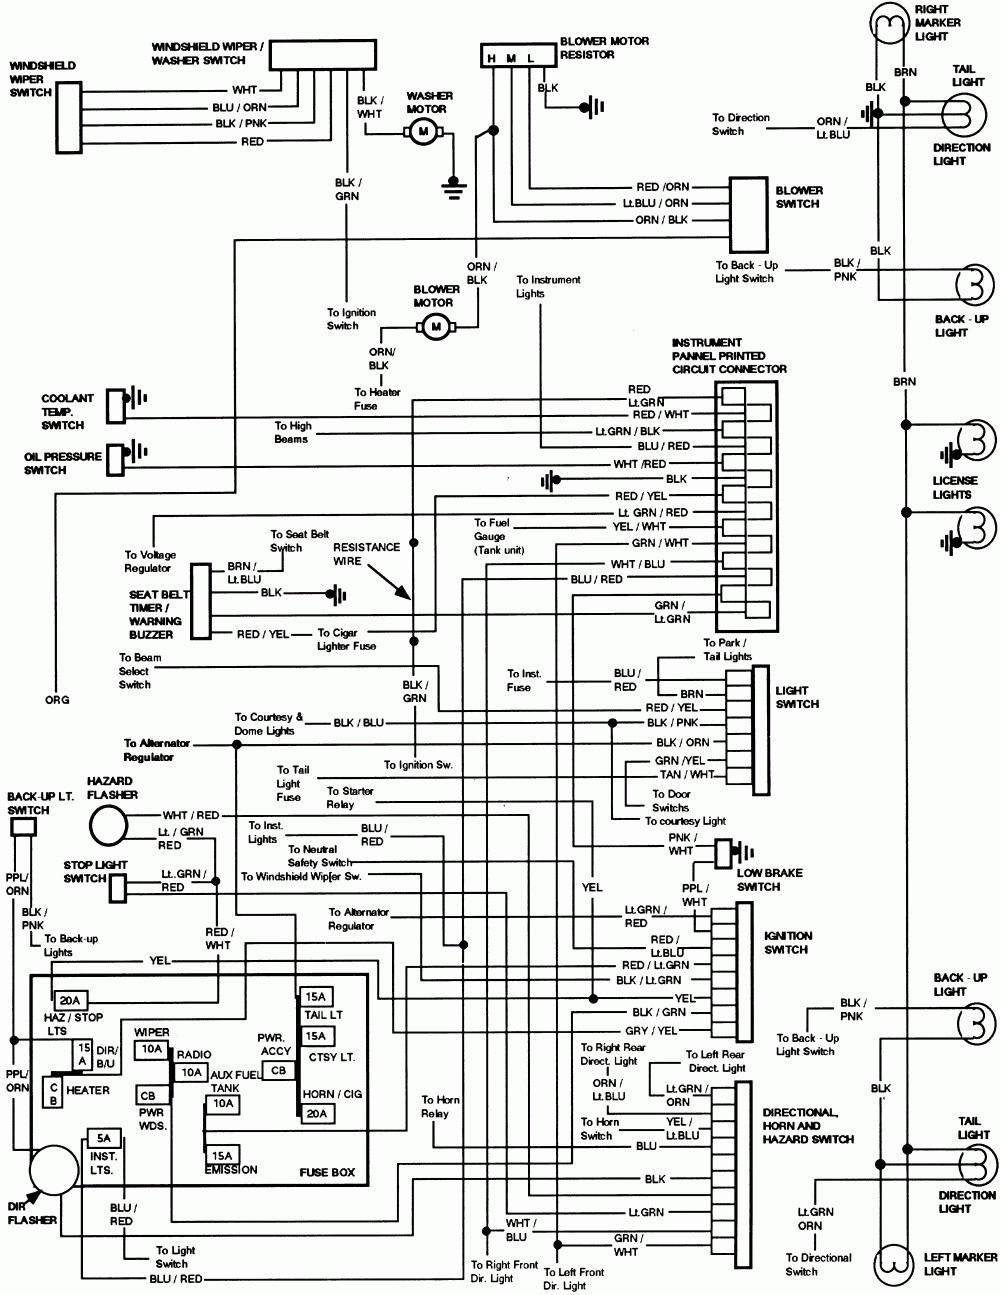 hight resolution of 1989 ford mustang wiring harness diagram wiring diagram mega 1988 ford sel engine wiring harness wiring